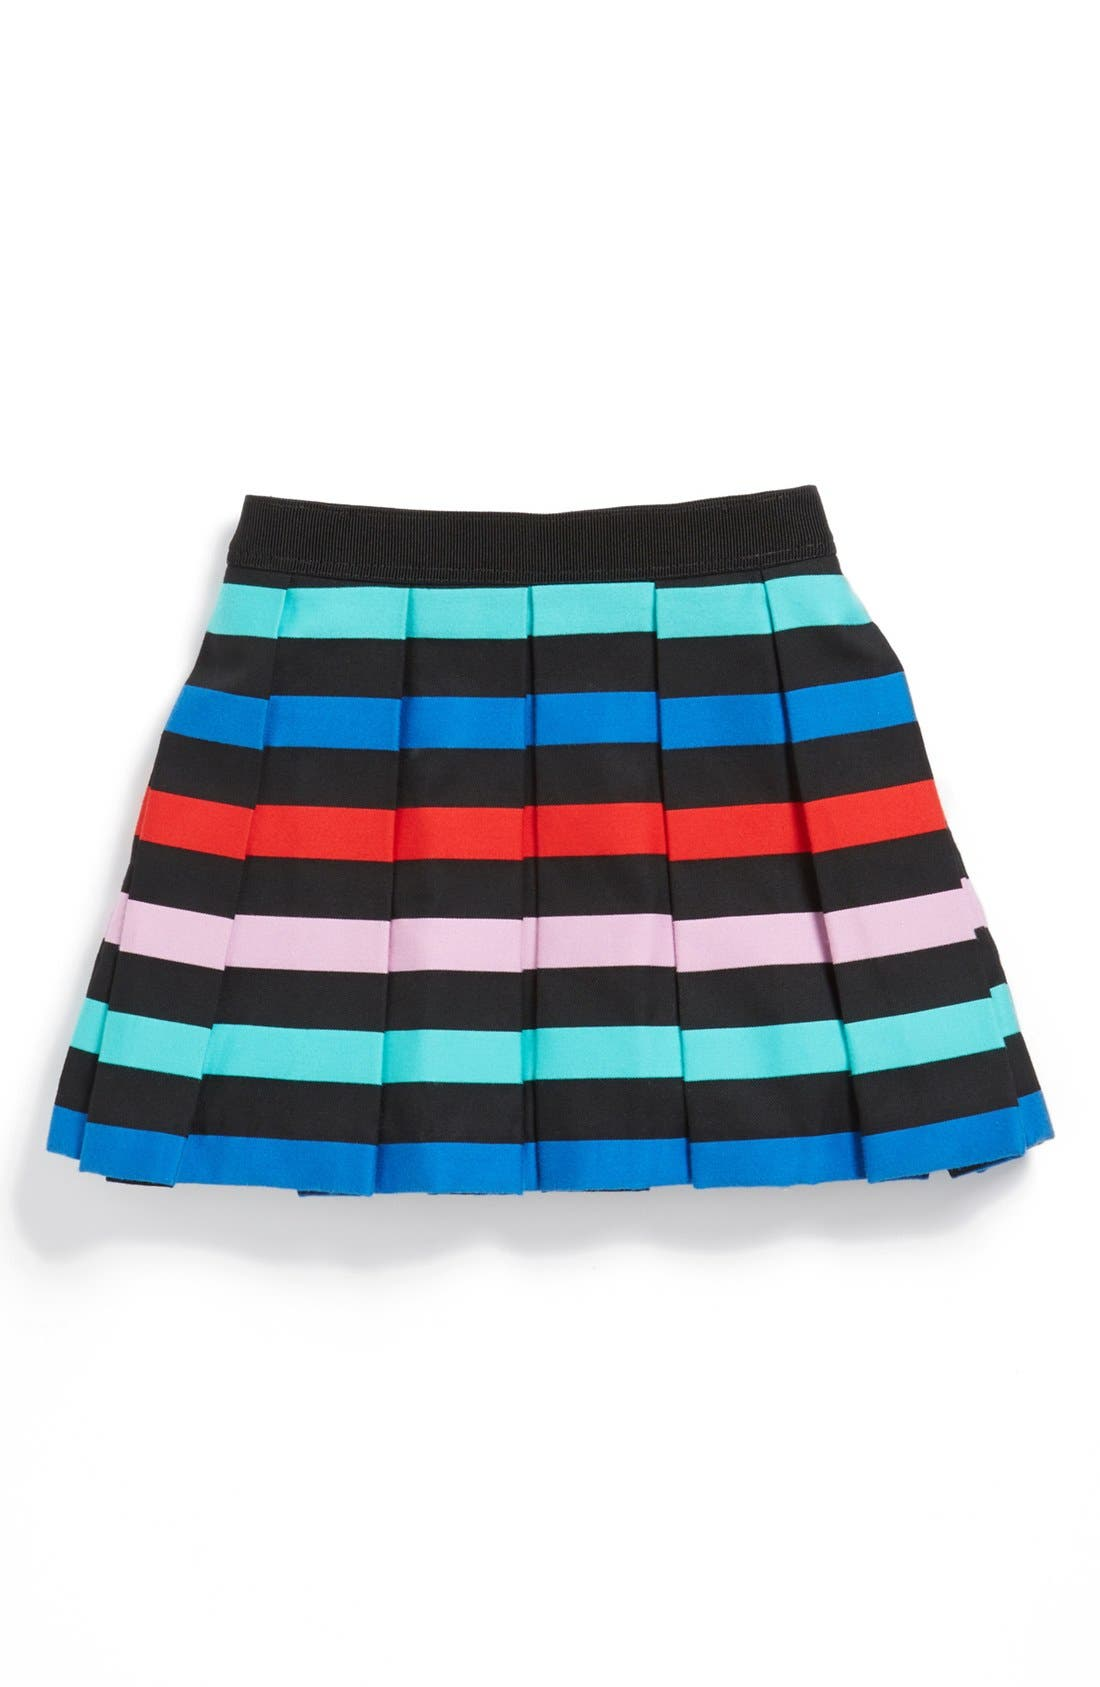 Main Image - Milly Minis Pleated Skirt (Toddler Girls, Little Girls & Big Girls)